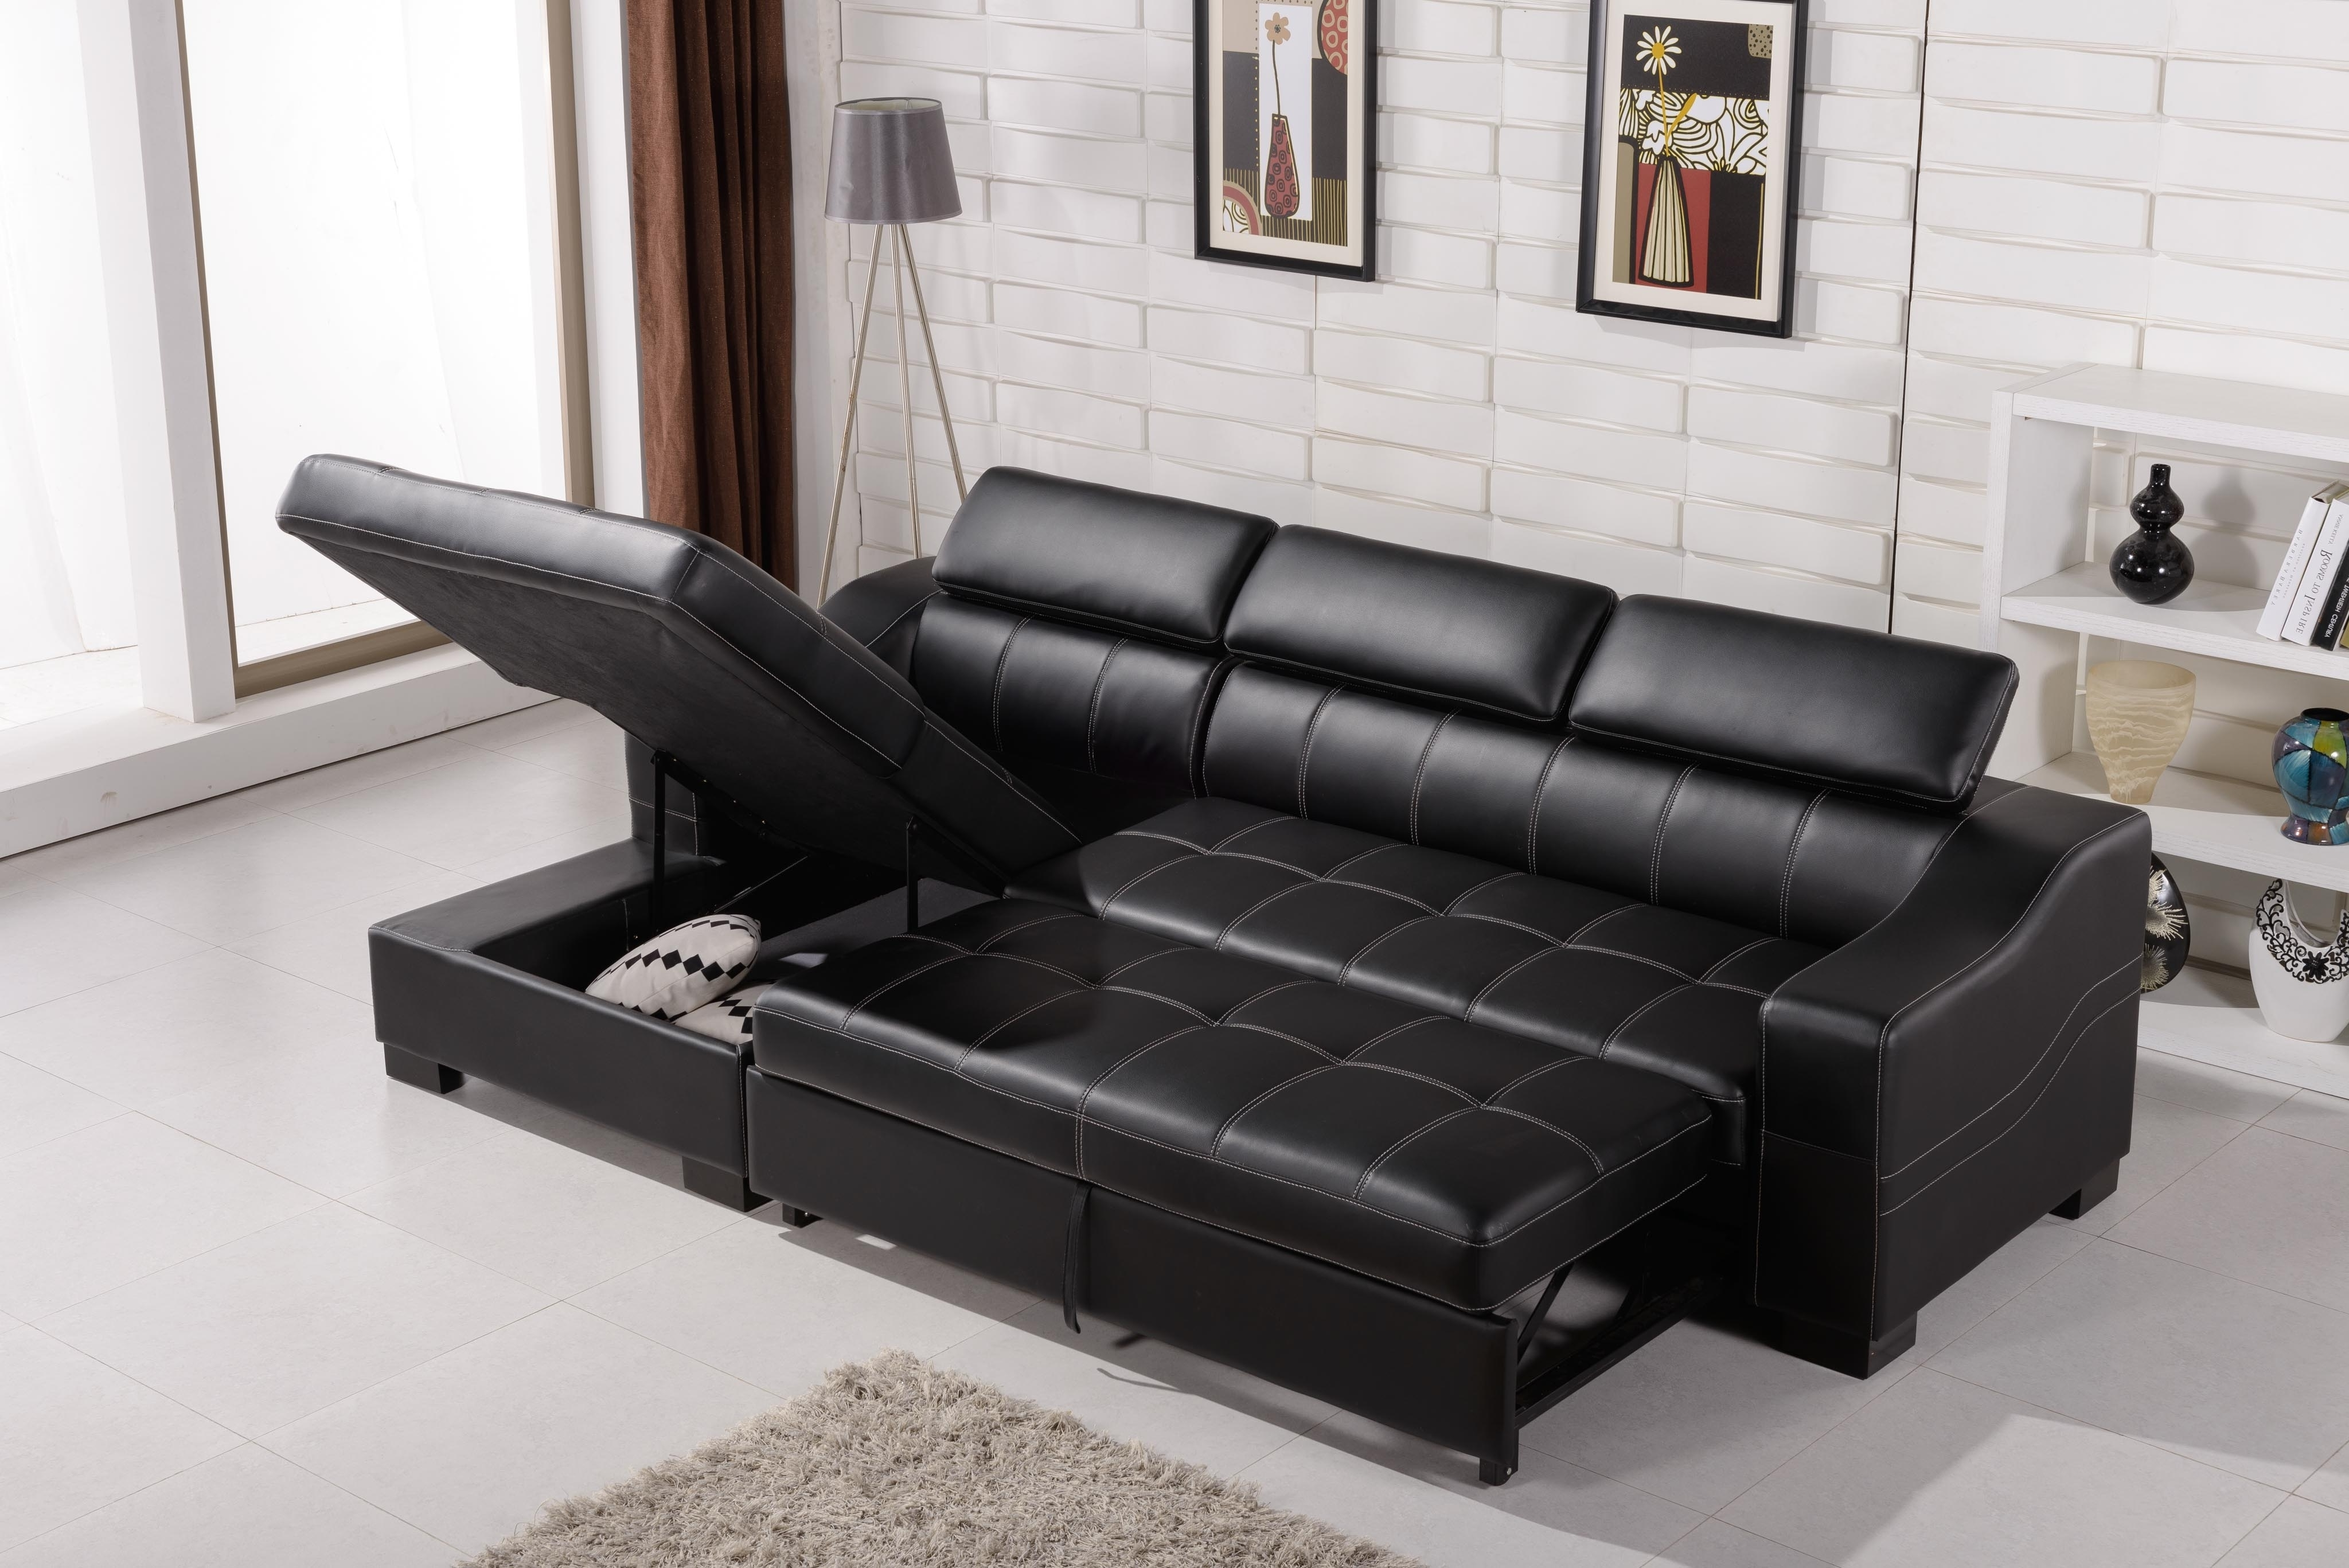 Recent Sectional Sofas That Turn Into Beds With Sectional Sofa That Turns Into A Bed • Sofa Bed (View 12 of 20)